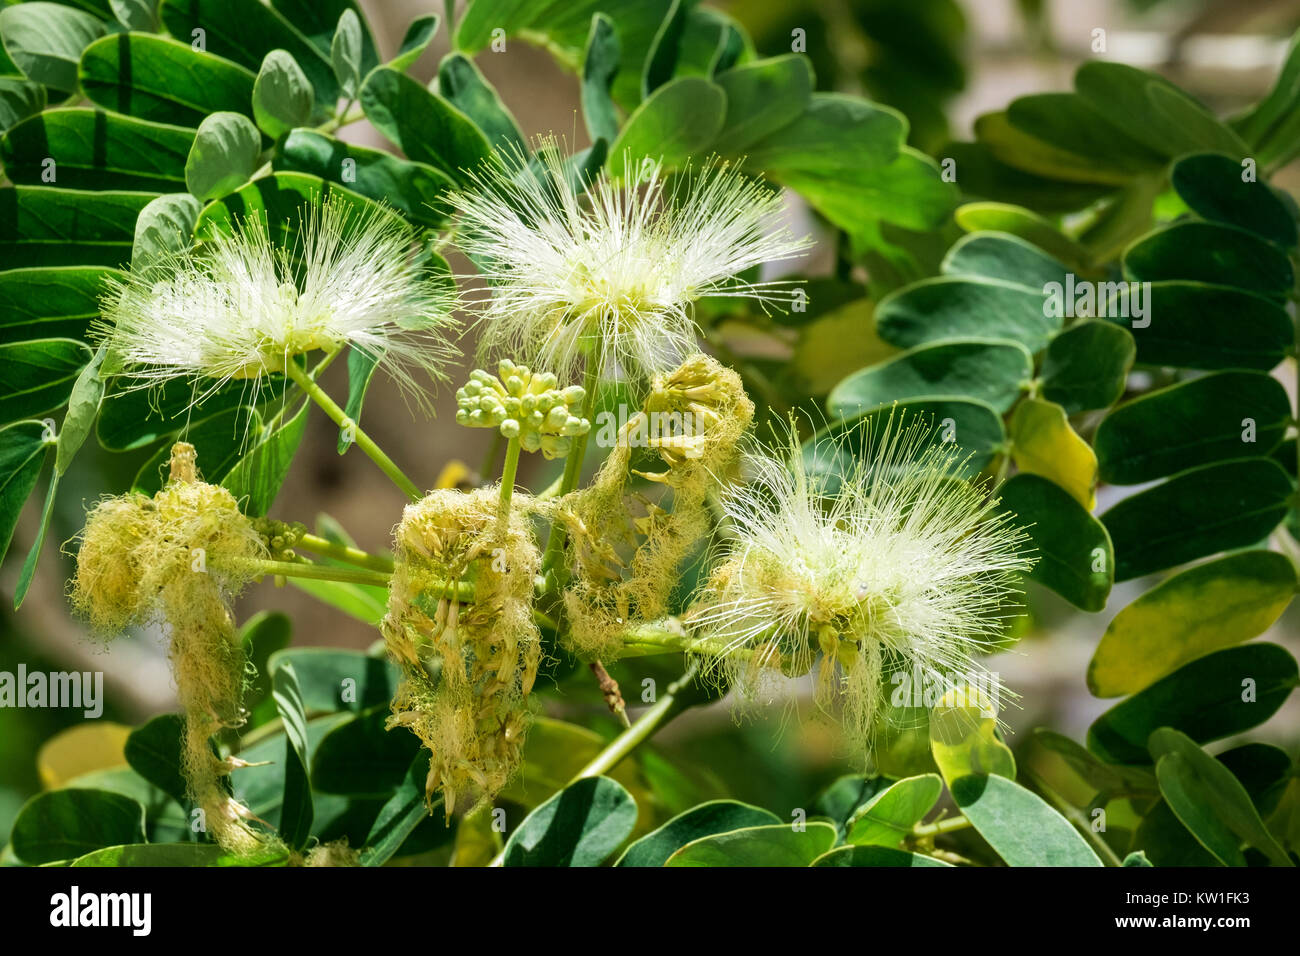 Flowers from acacia silk (Albizia julibrissin) - Stock Image